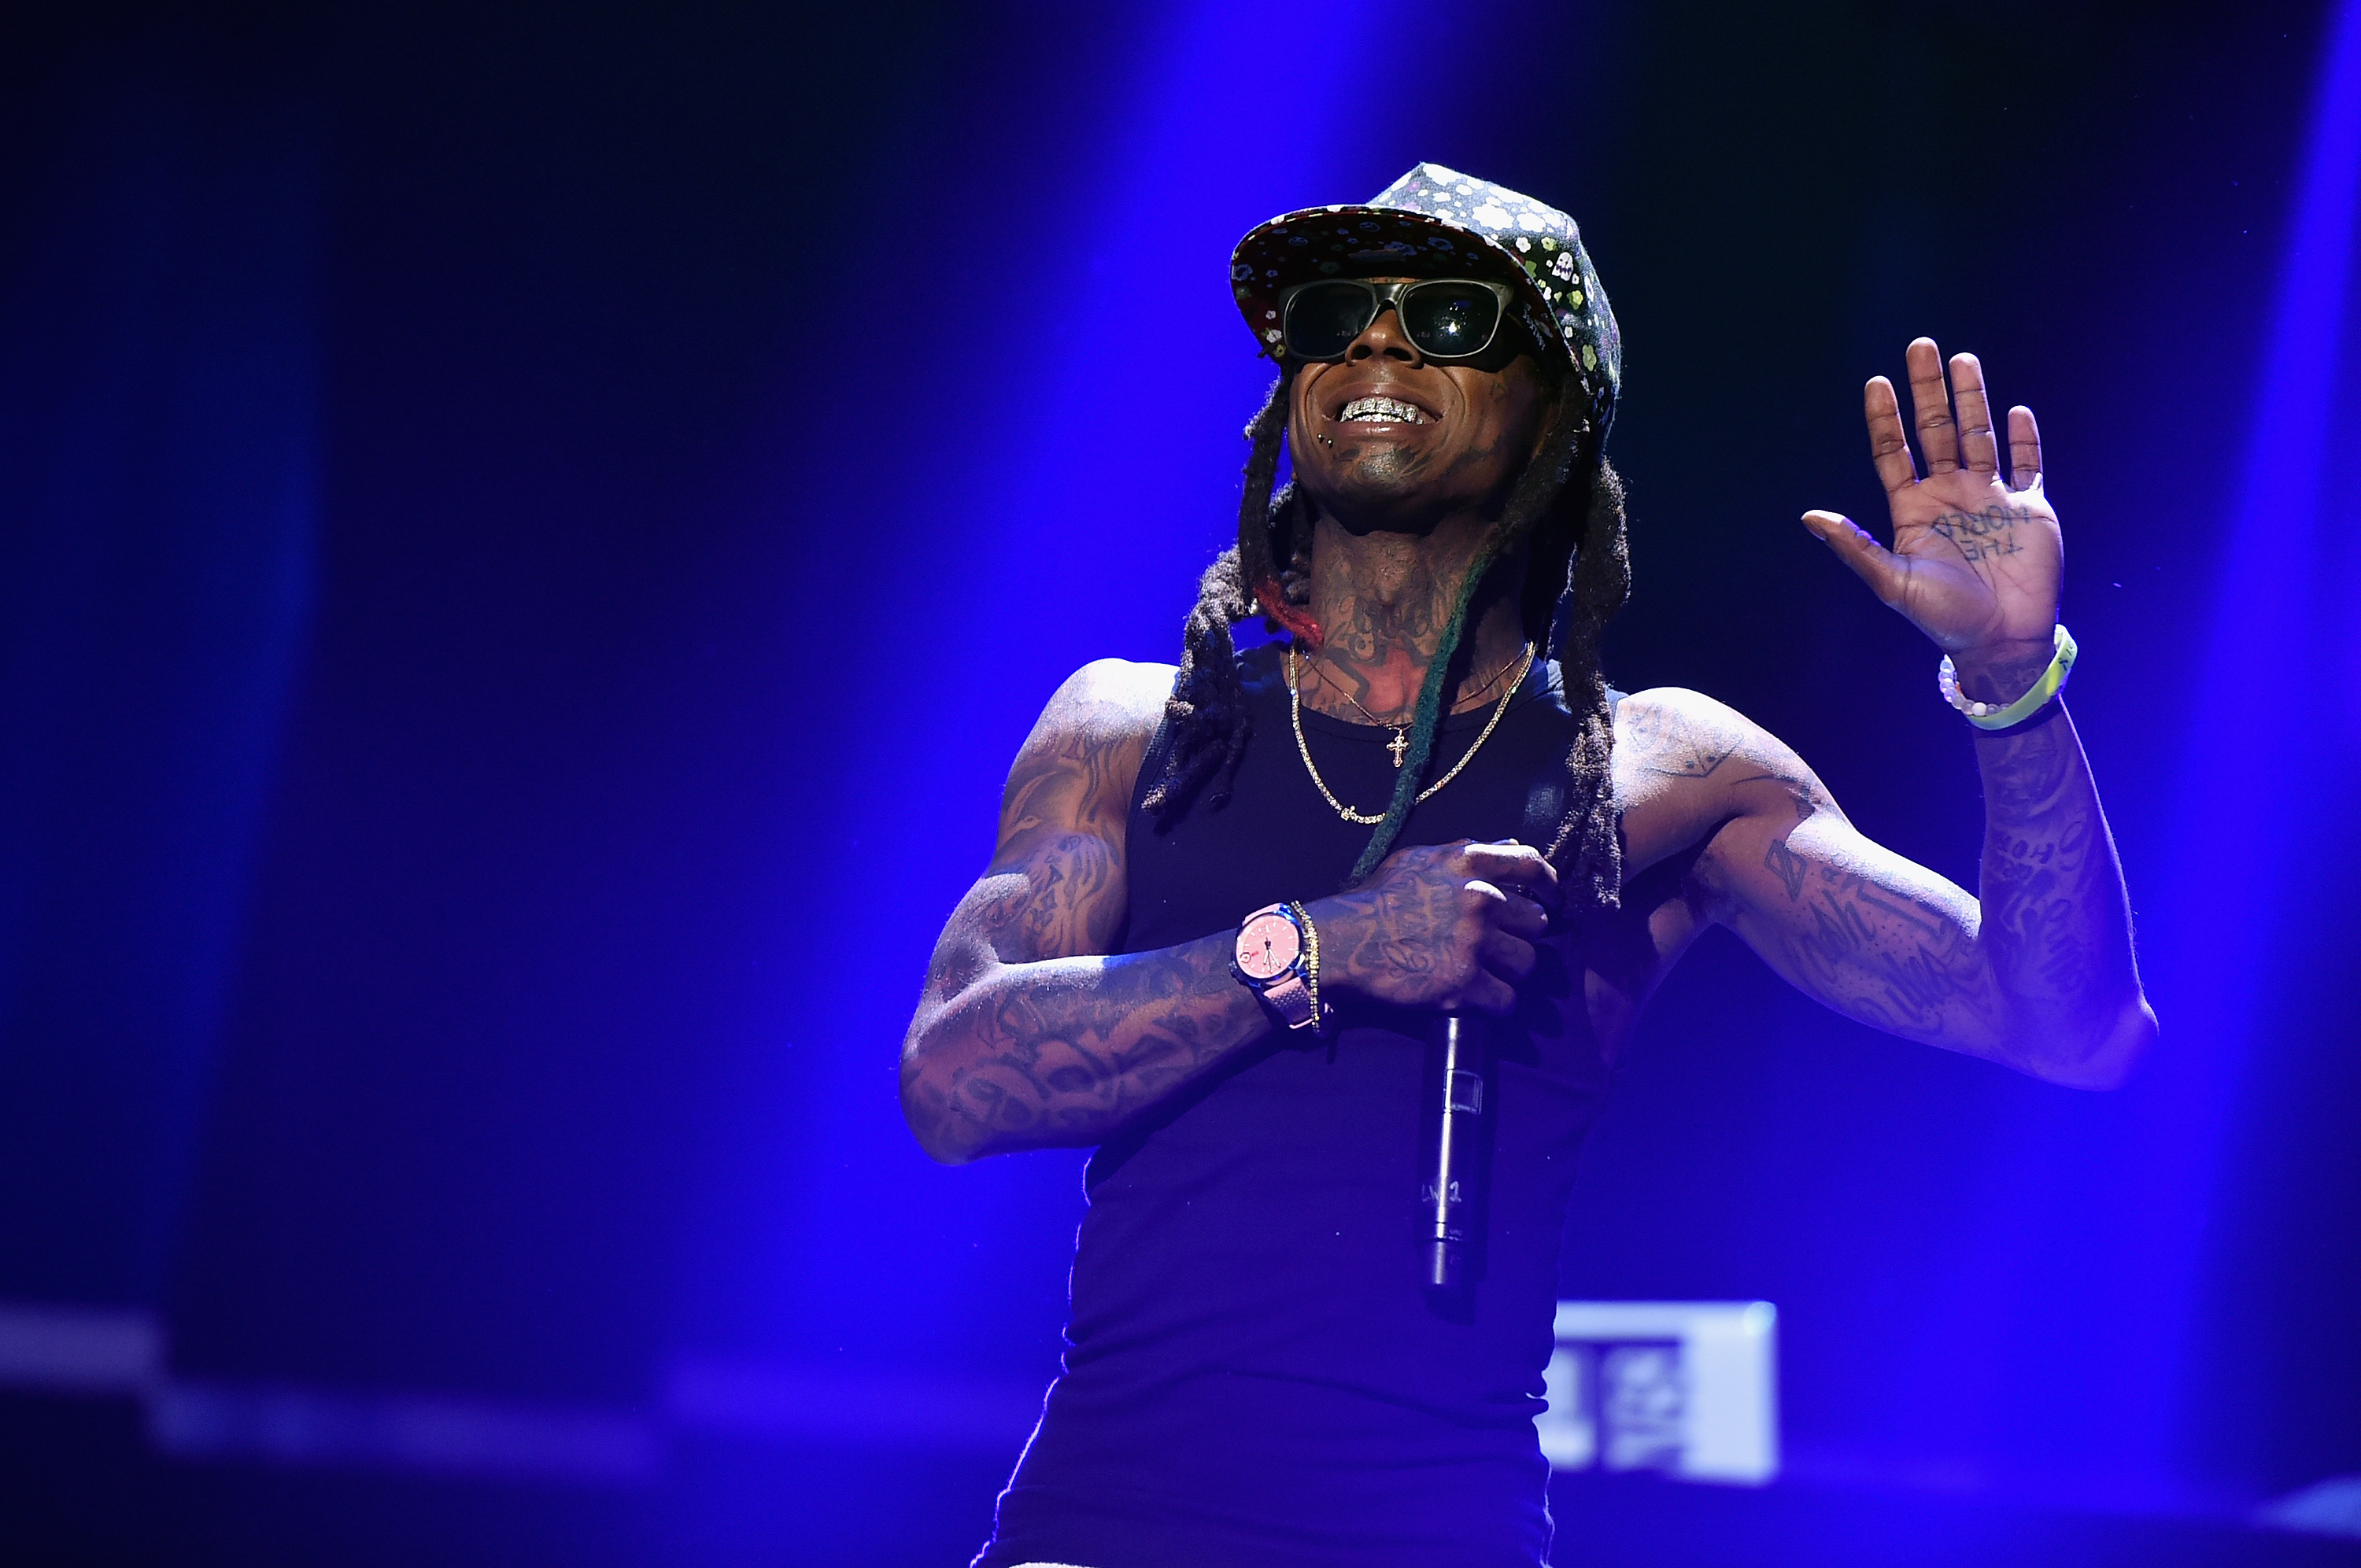 Lil Wayne says sorry for Black Lives Matter rant: 'Apologies to anyone who was offended'